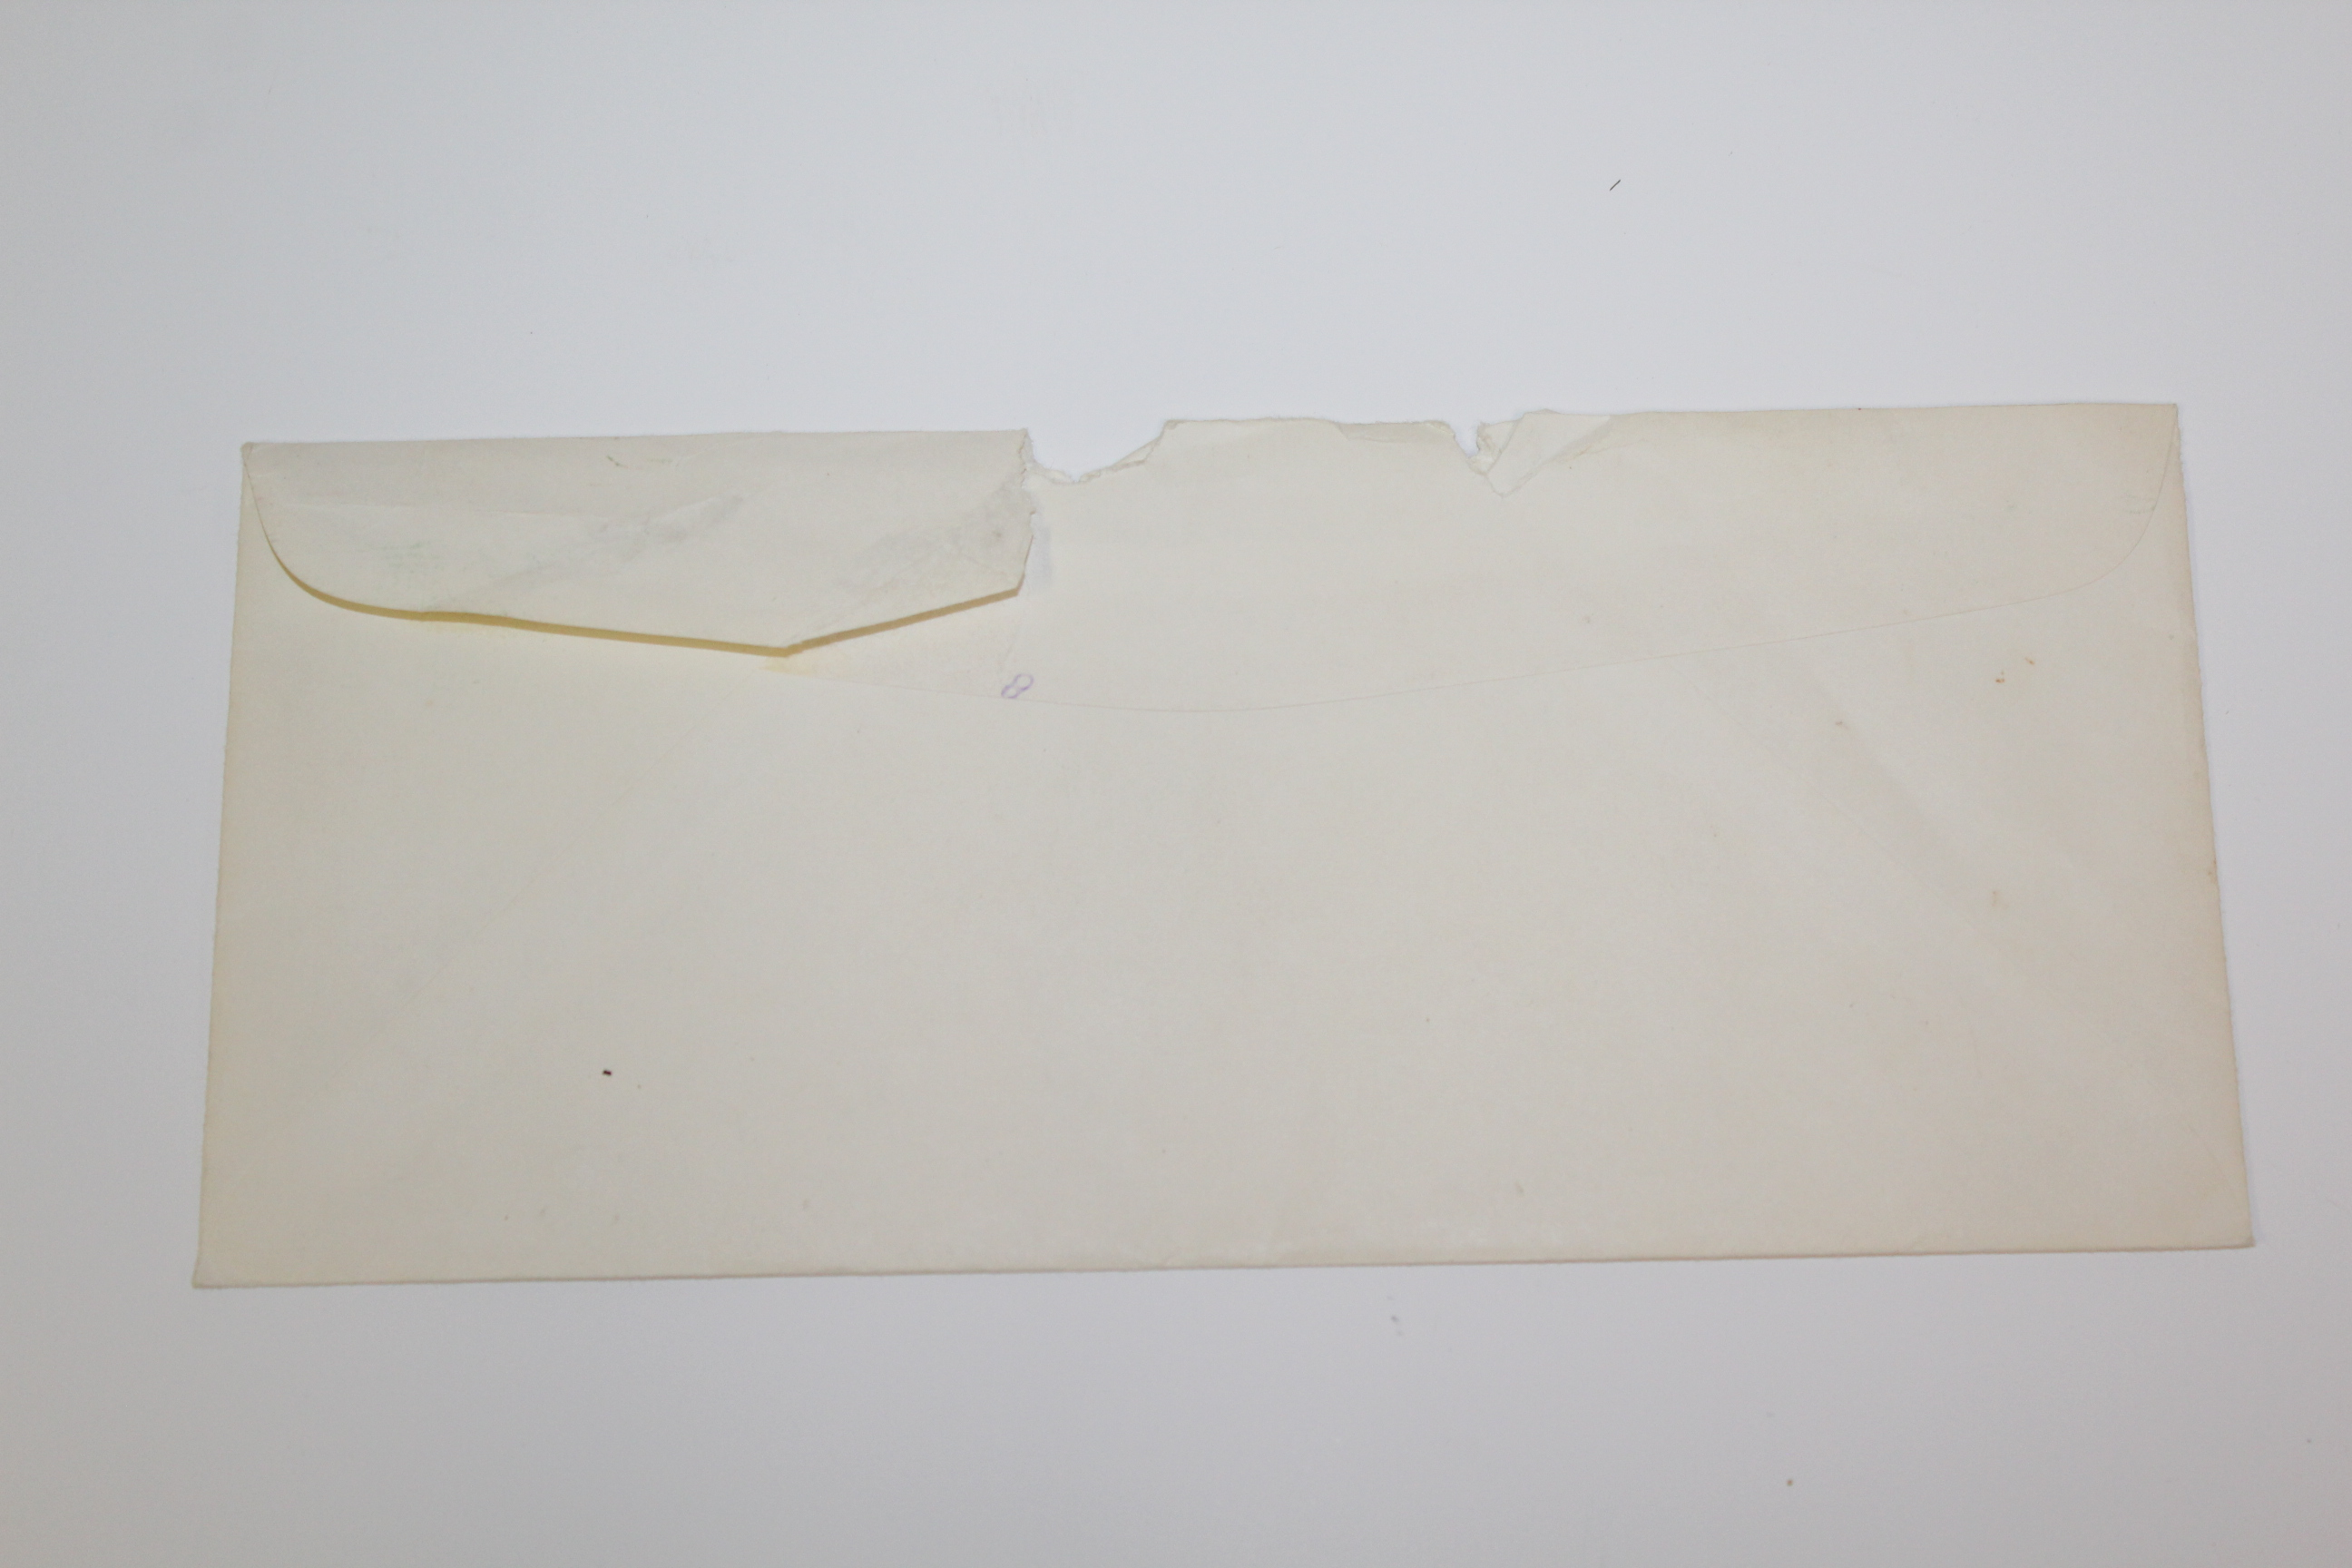 1976 Augusta National Press Letter with